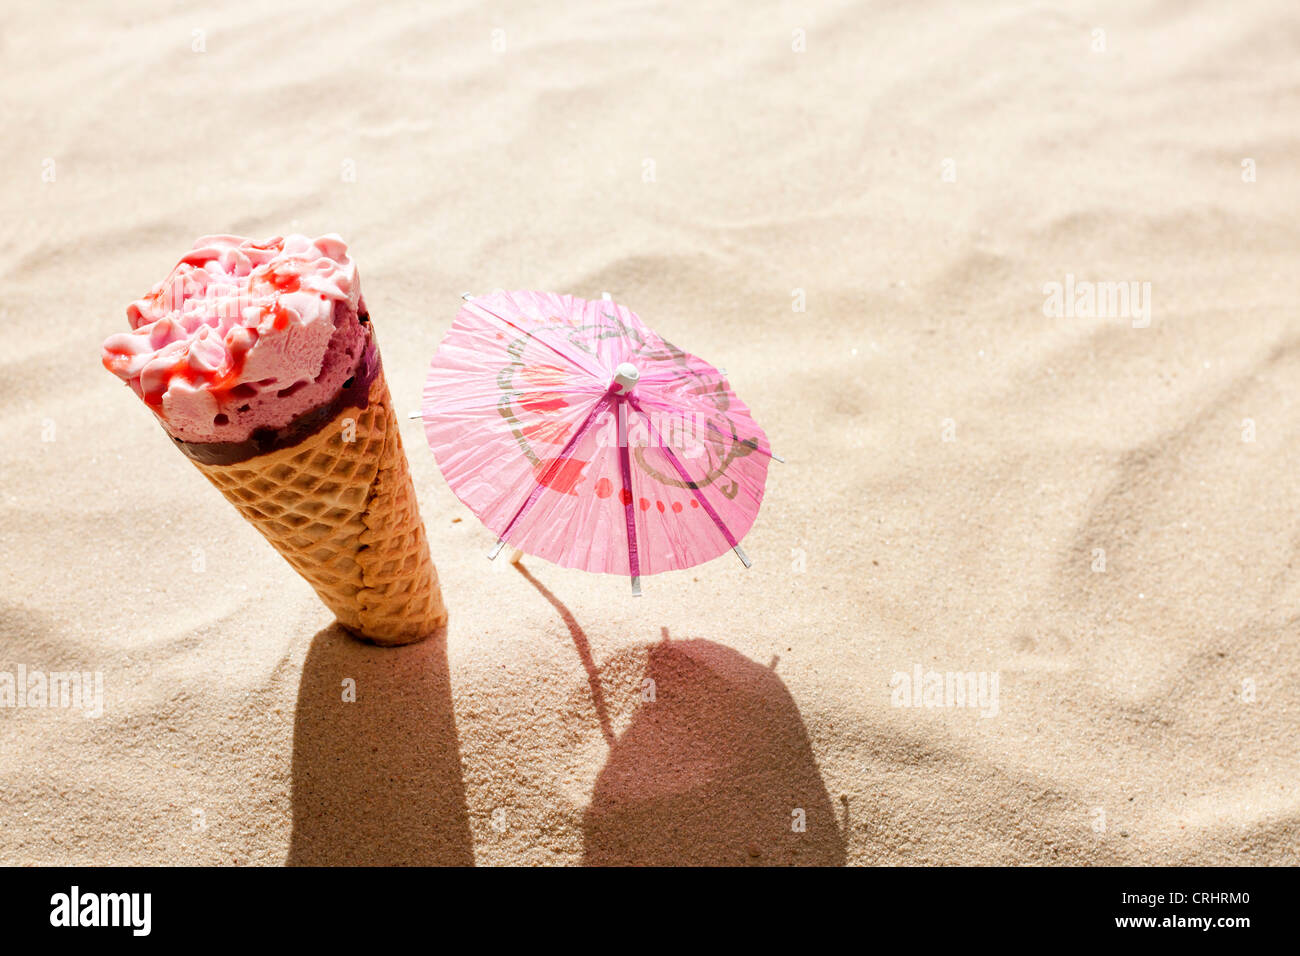 ice cream on beach in sand concept of hot day - Stock Image